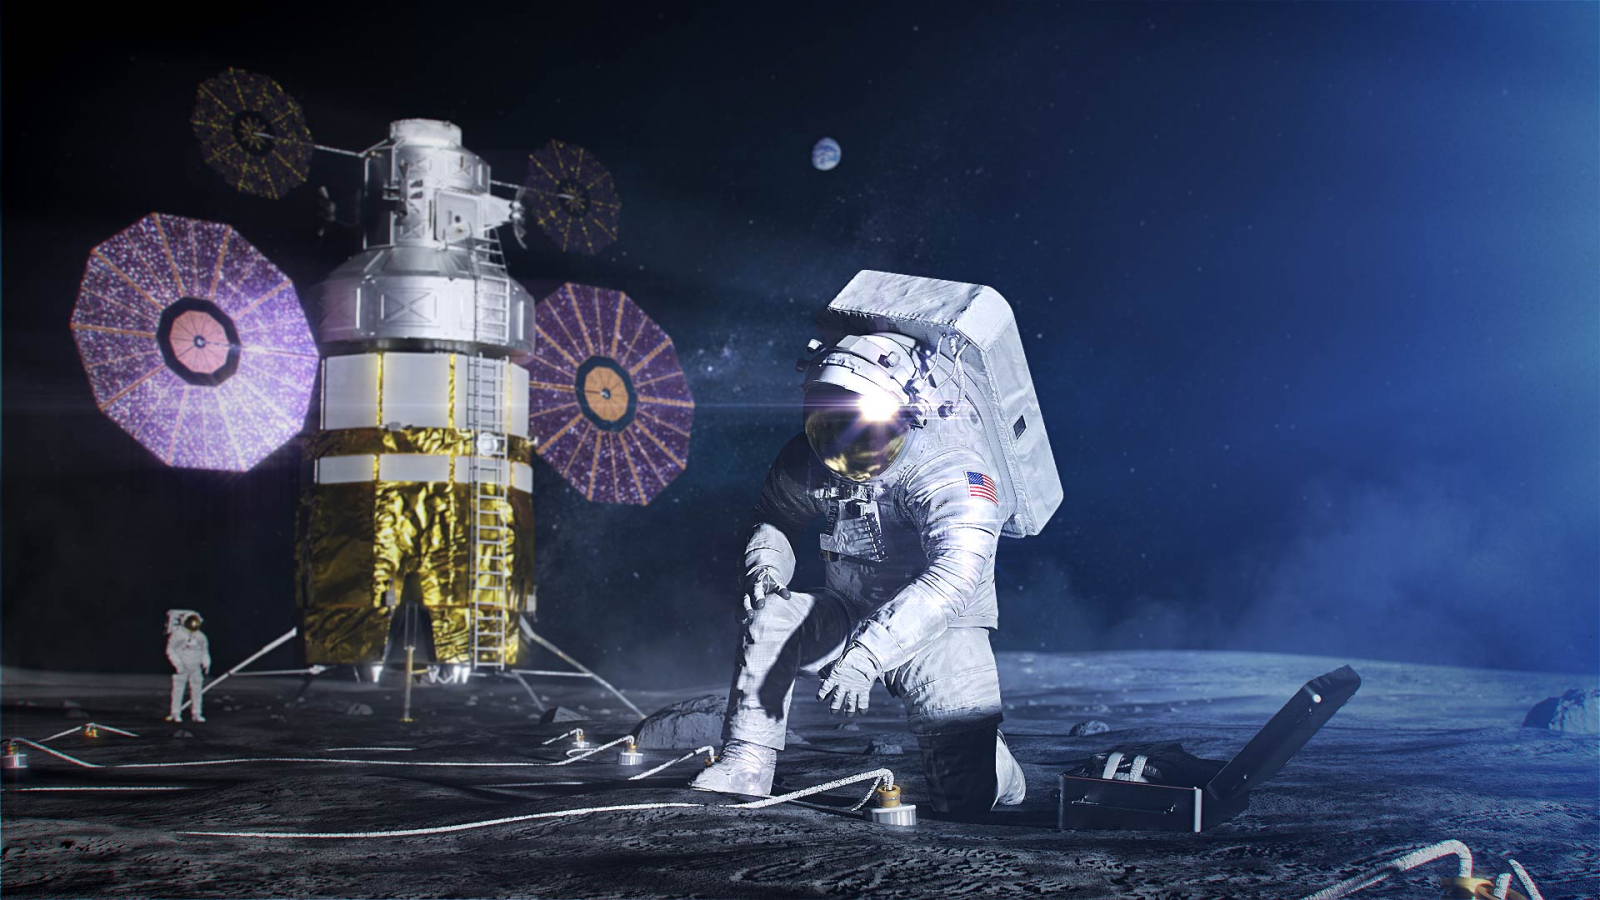 NASA to send Viper robot to scout water ice on Lunar surface